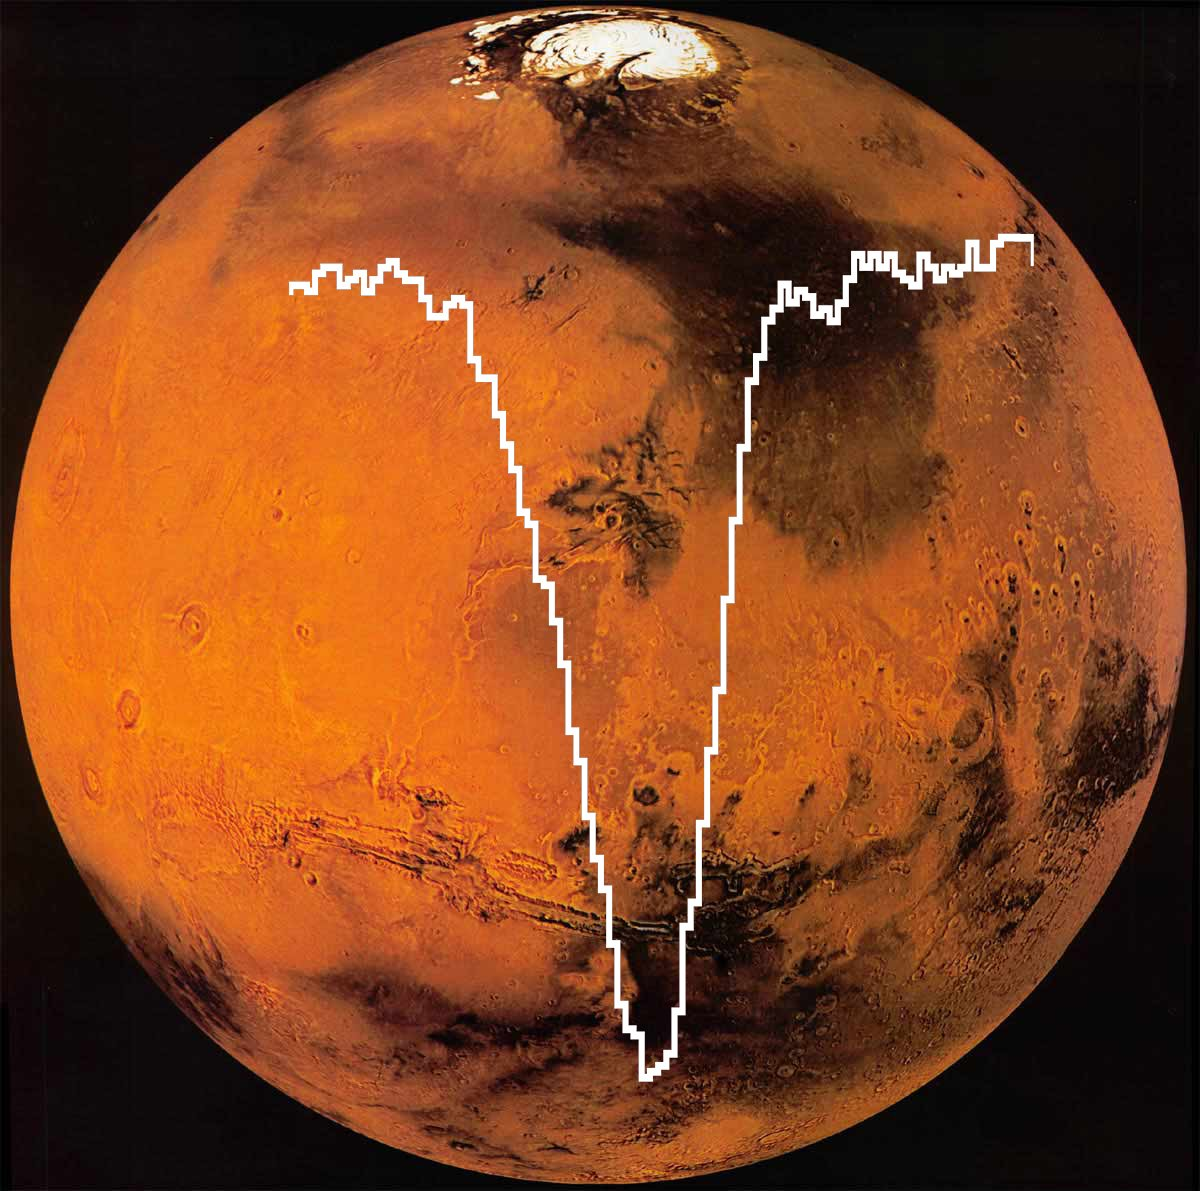 NASA announces there's oxygen on Mars